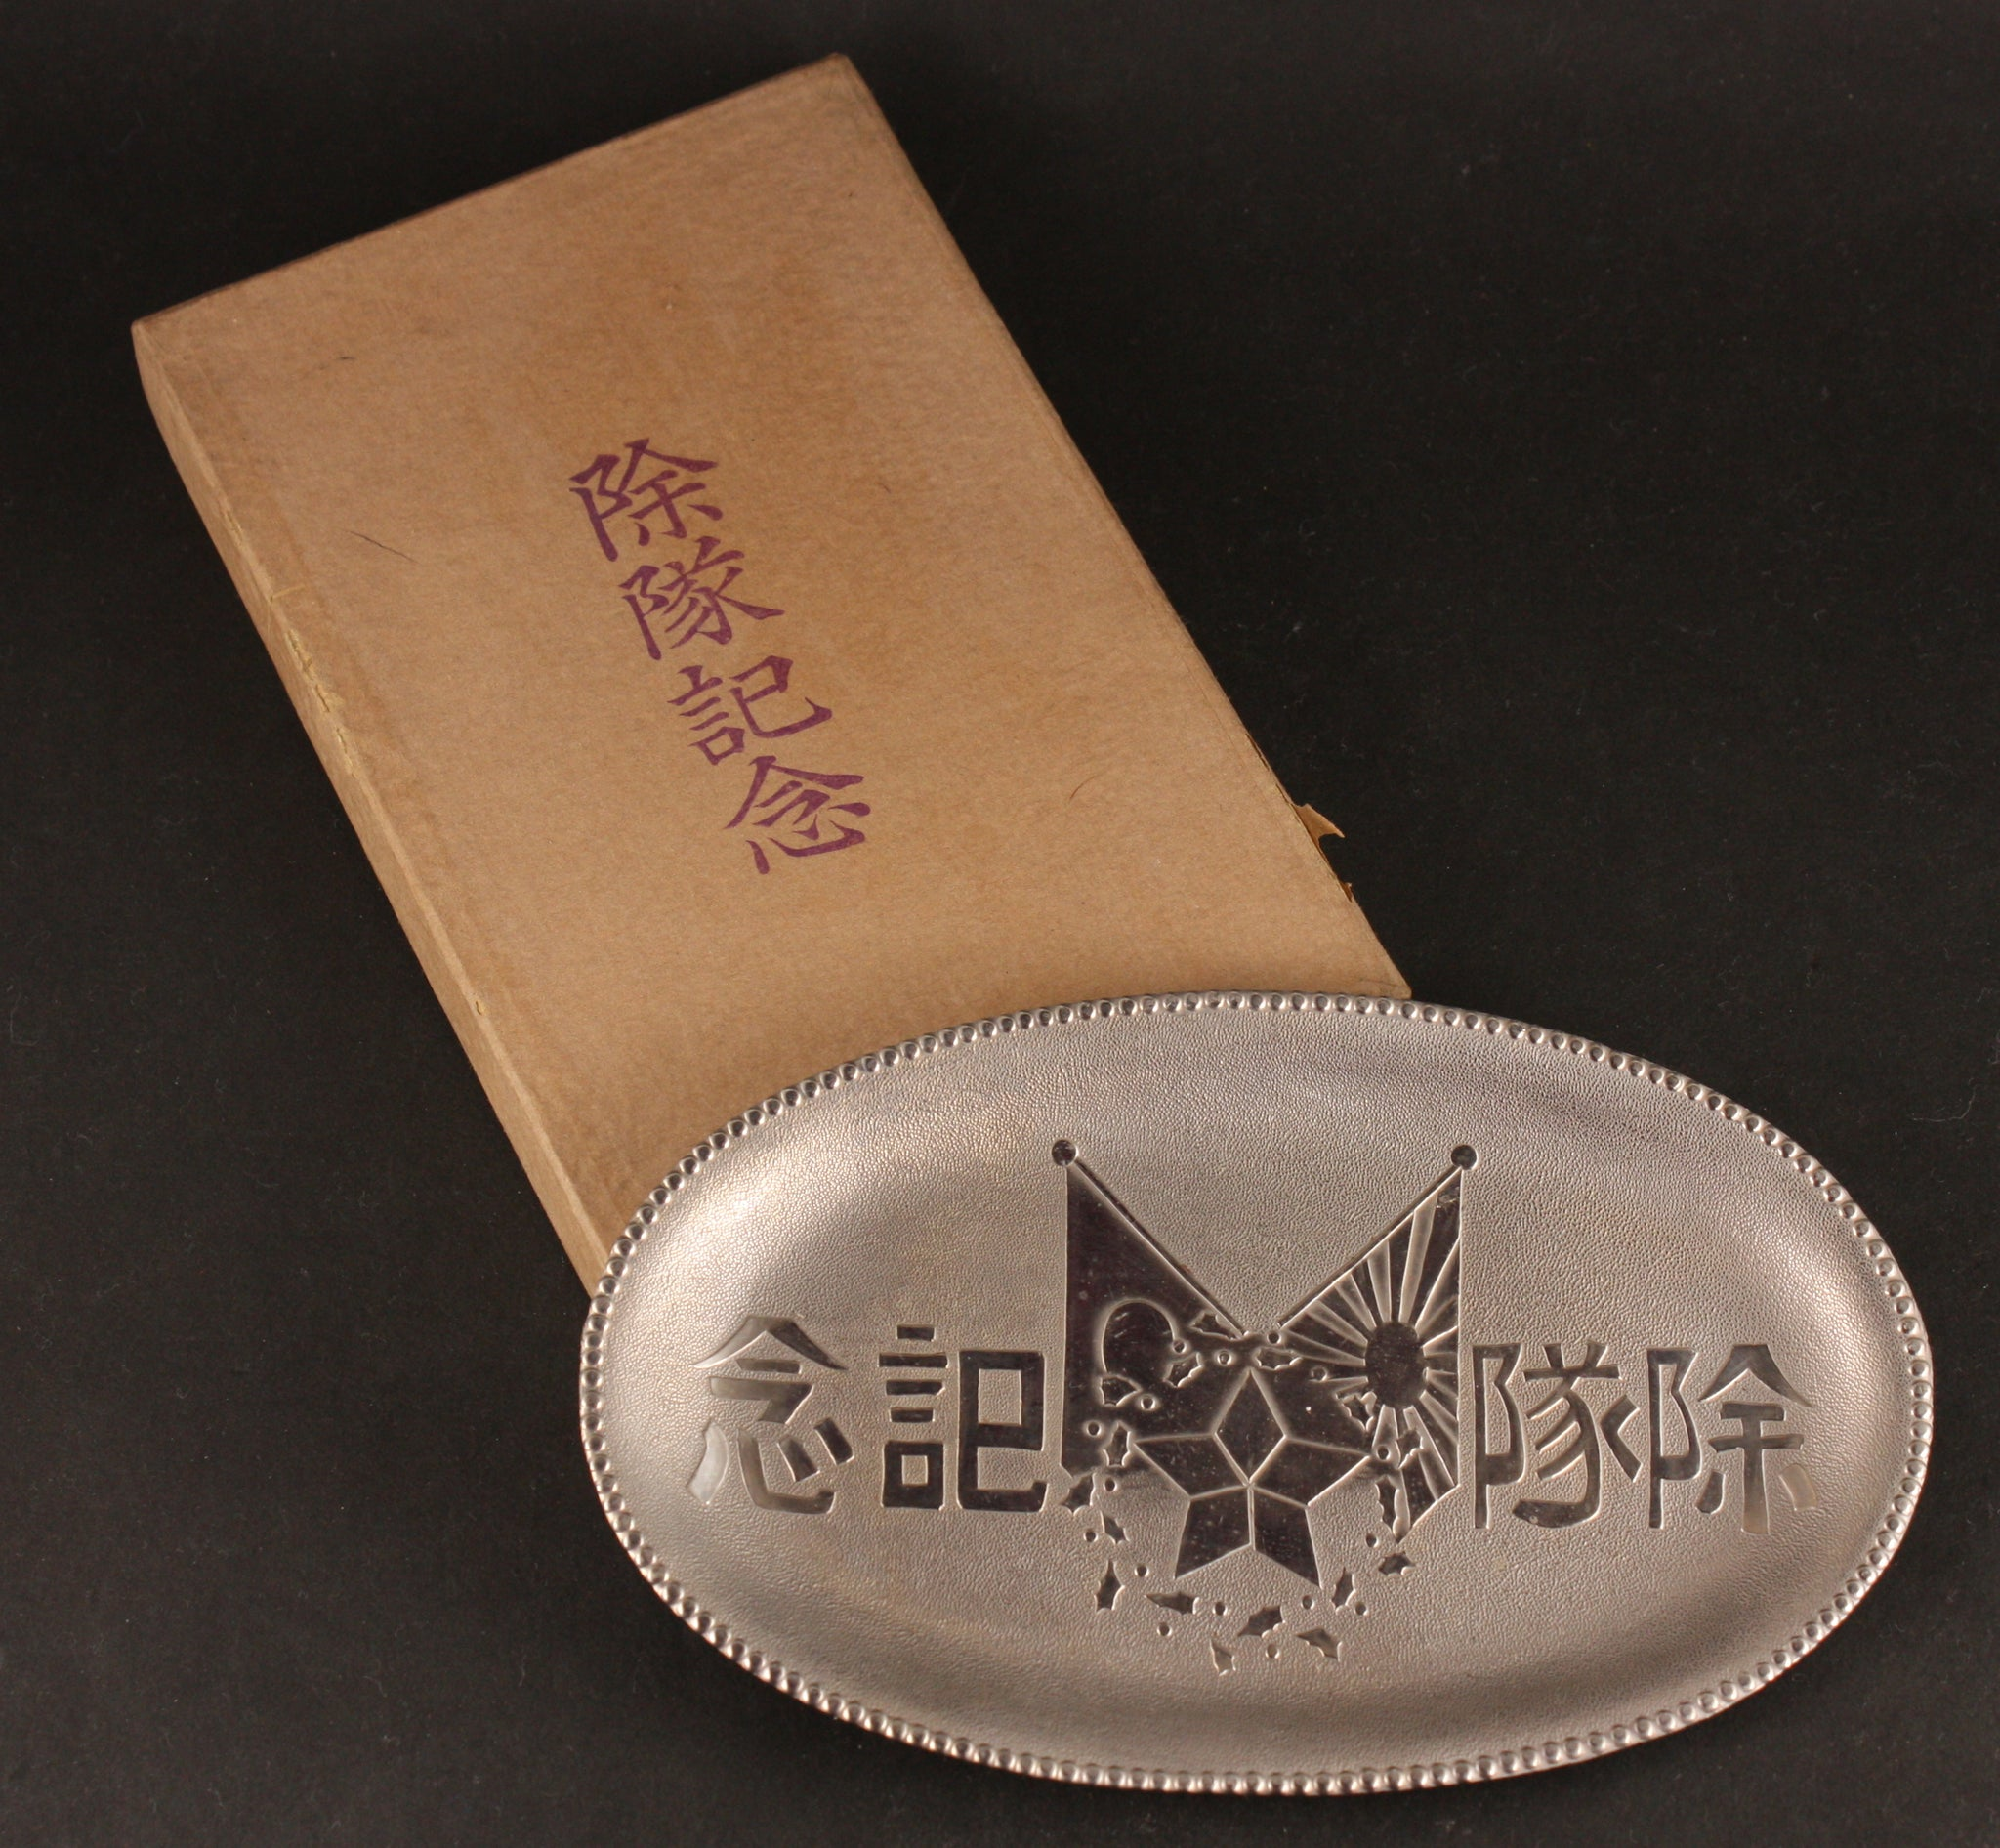 Antique Japanese Military Metal Discharge Commemoration Dish with Original Box